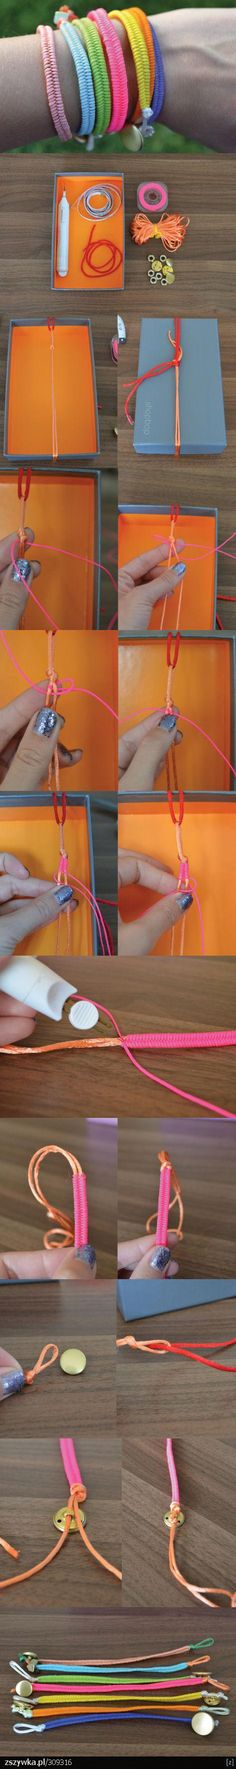 easy to make rainbow bracelets